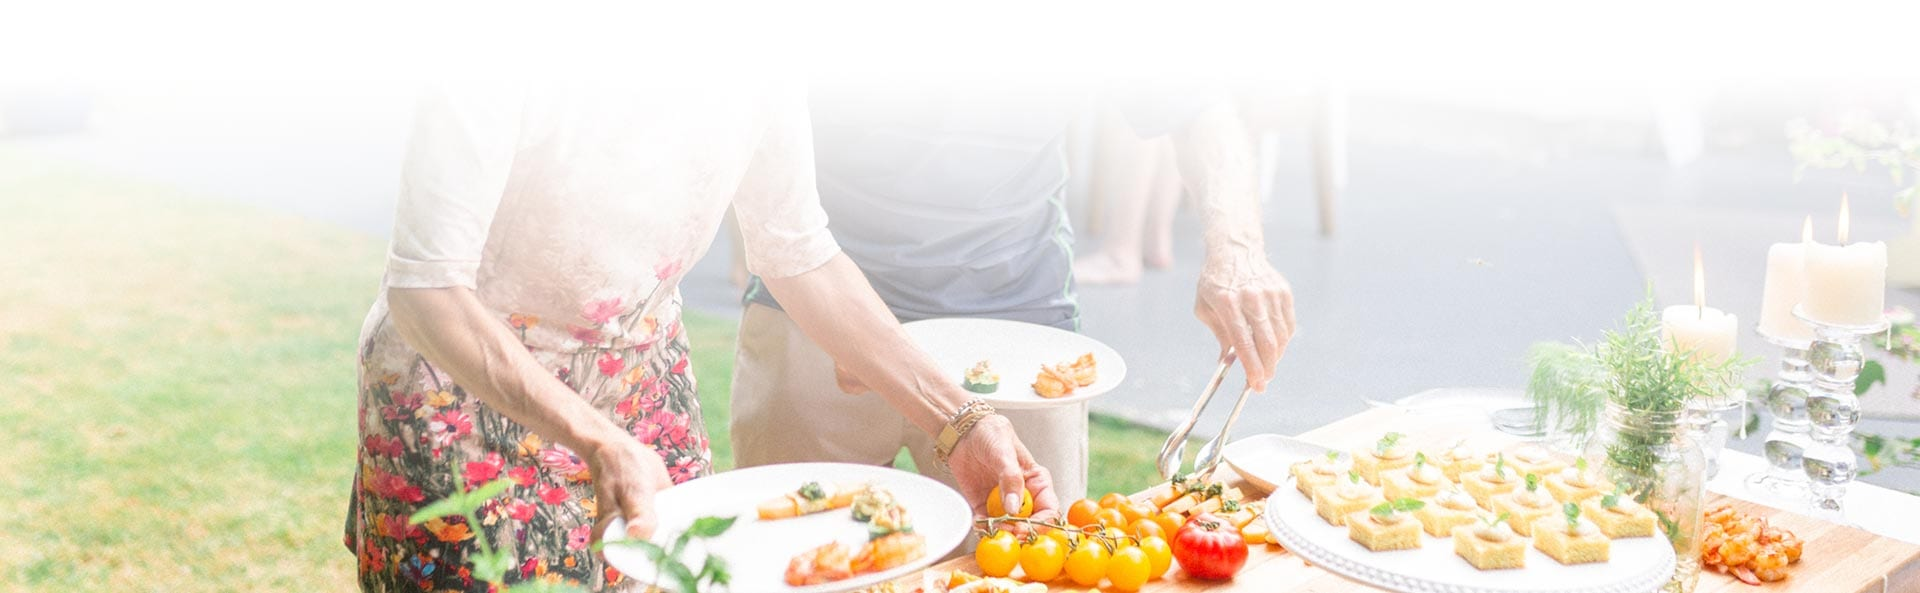 catering-service-offerings